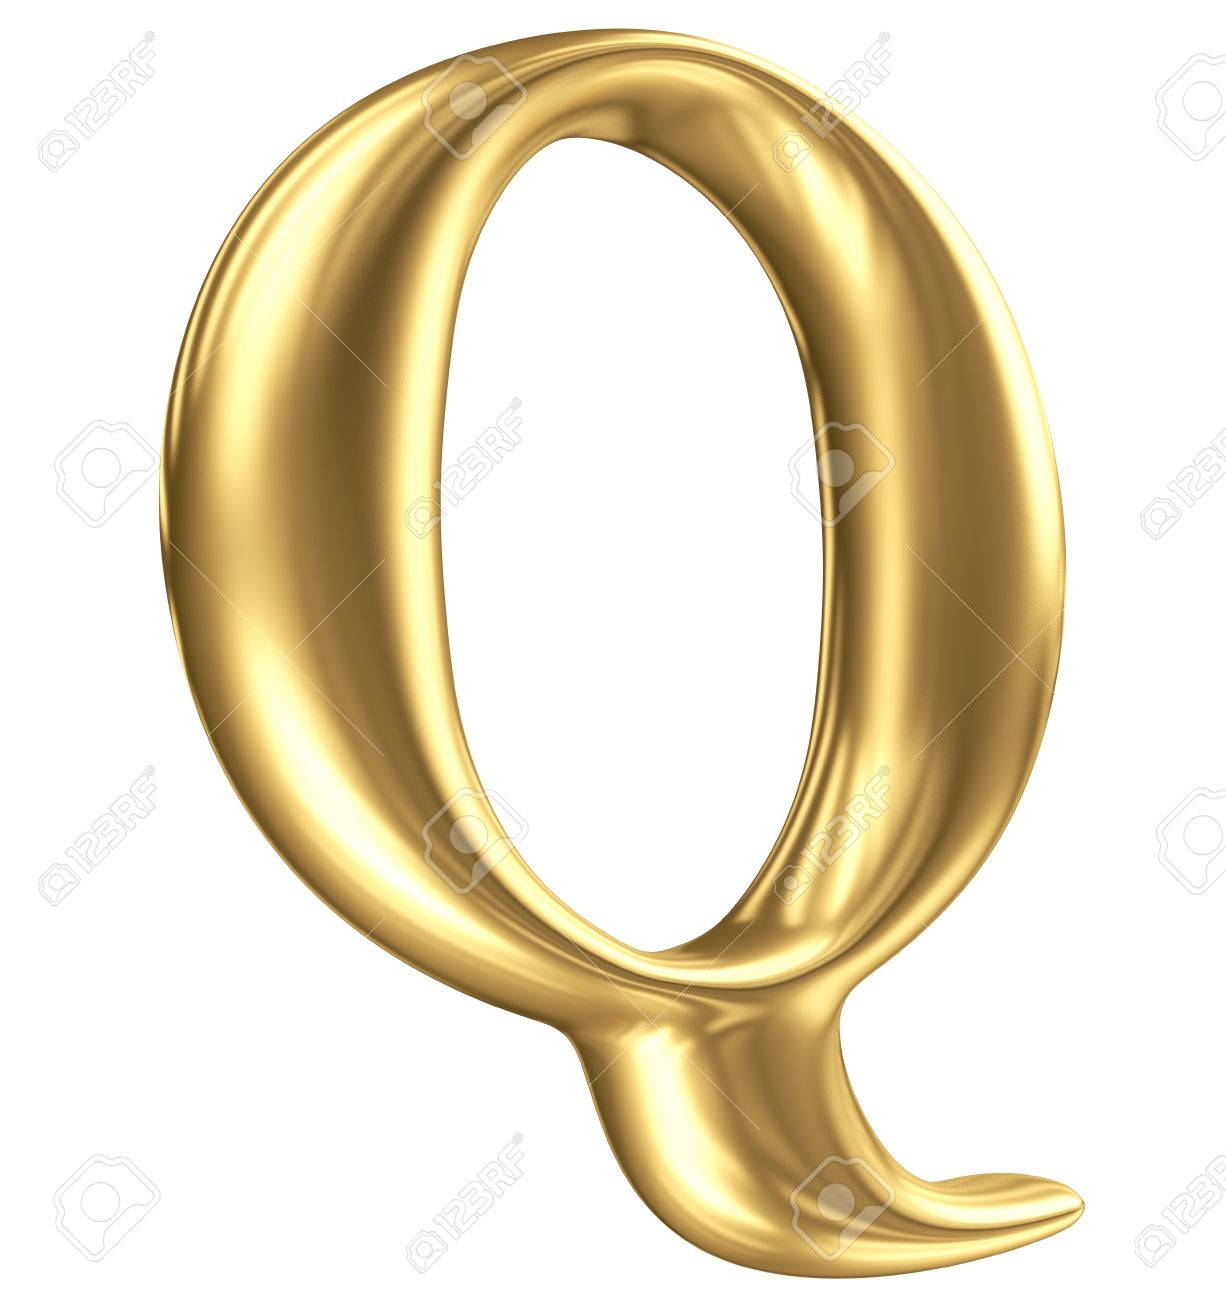 Golden matt letter Q in perspective, jewellery font collection Stock Photo - 23195009